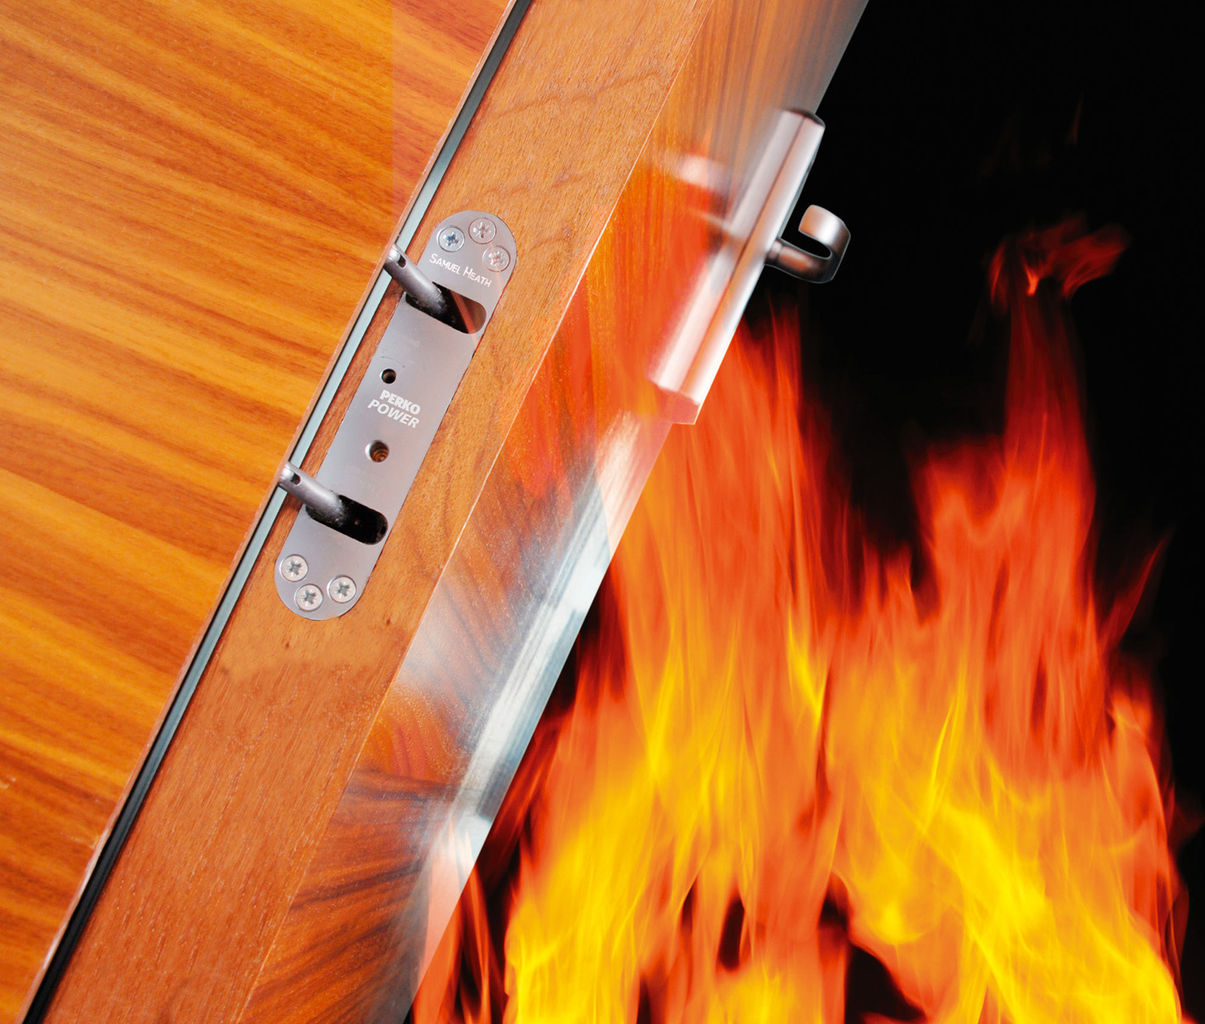 fire door assessment